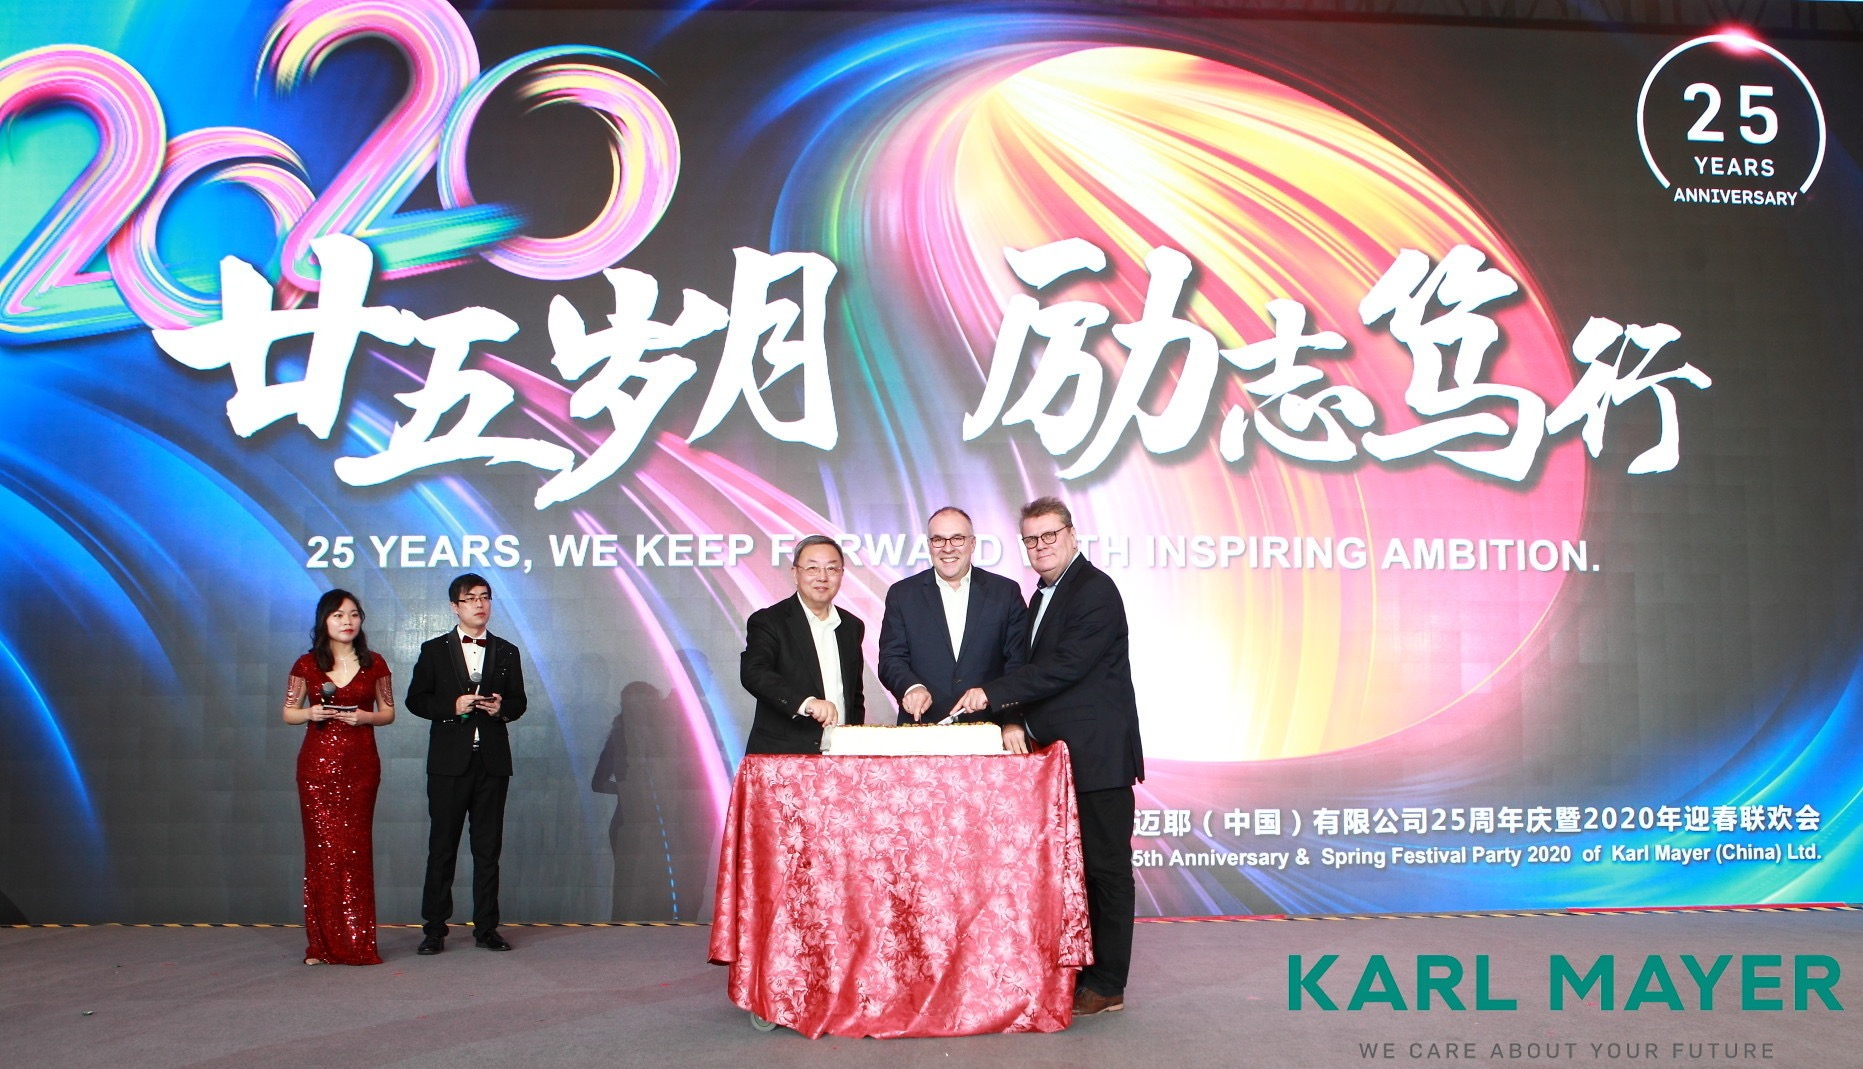 (from left to right, foreground): Yang Zengxing, General Manager of Karl Mayer(CHINA) as well as Arno Gärtner, CEO, and Roland Kohn, member of the extended Karl Mayer management team cut the birthday cake. © Karl Mayer.